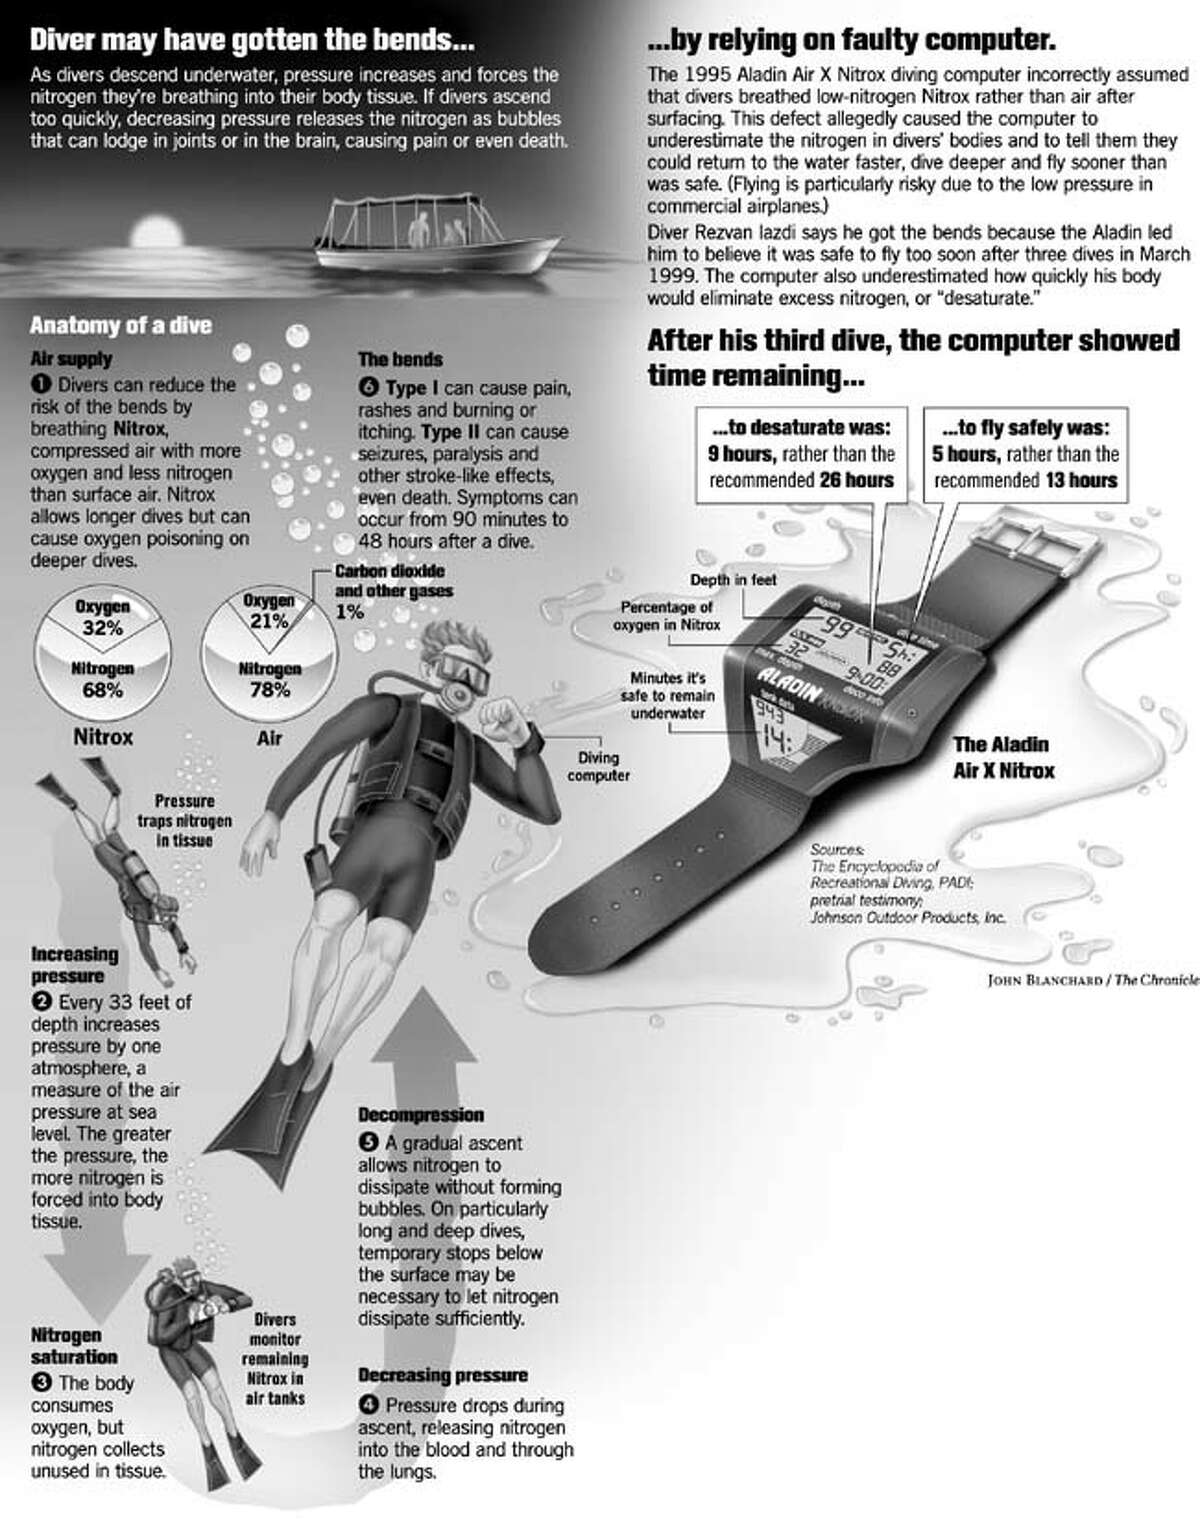 Faulty Diving Computer. Chronicle graphic by John Blanchard